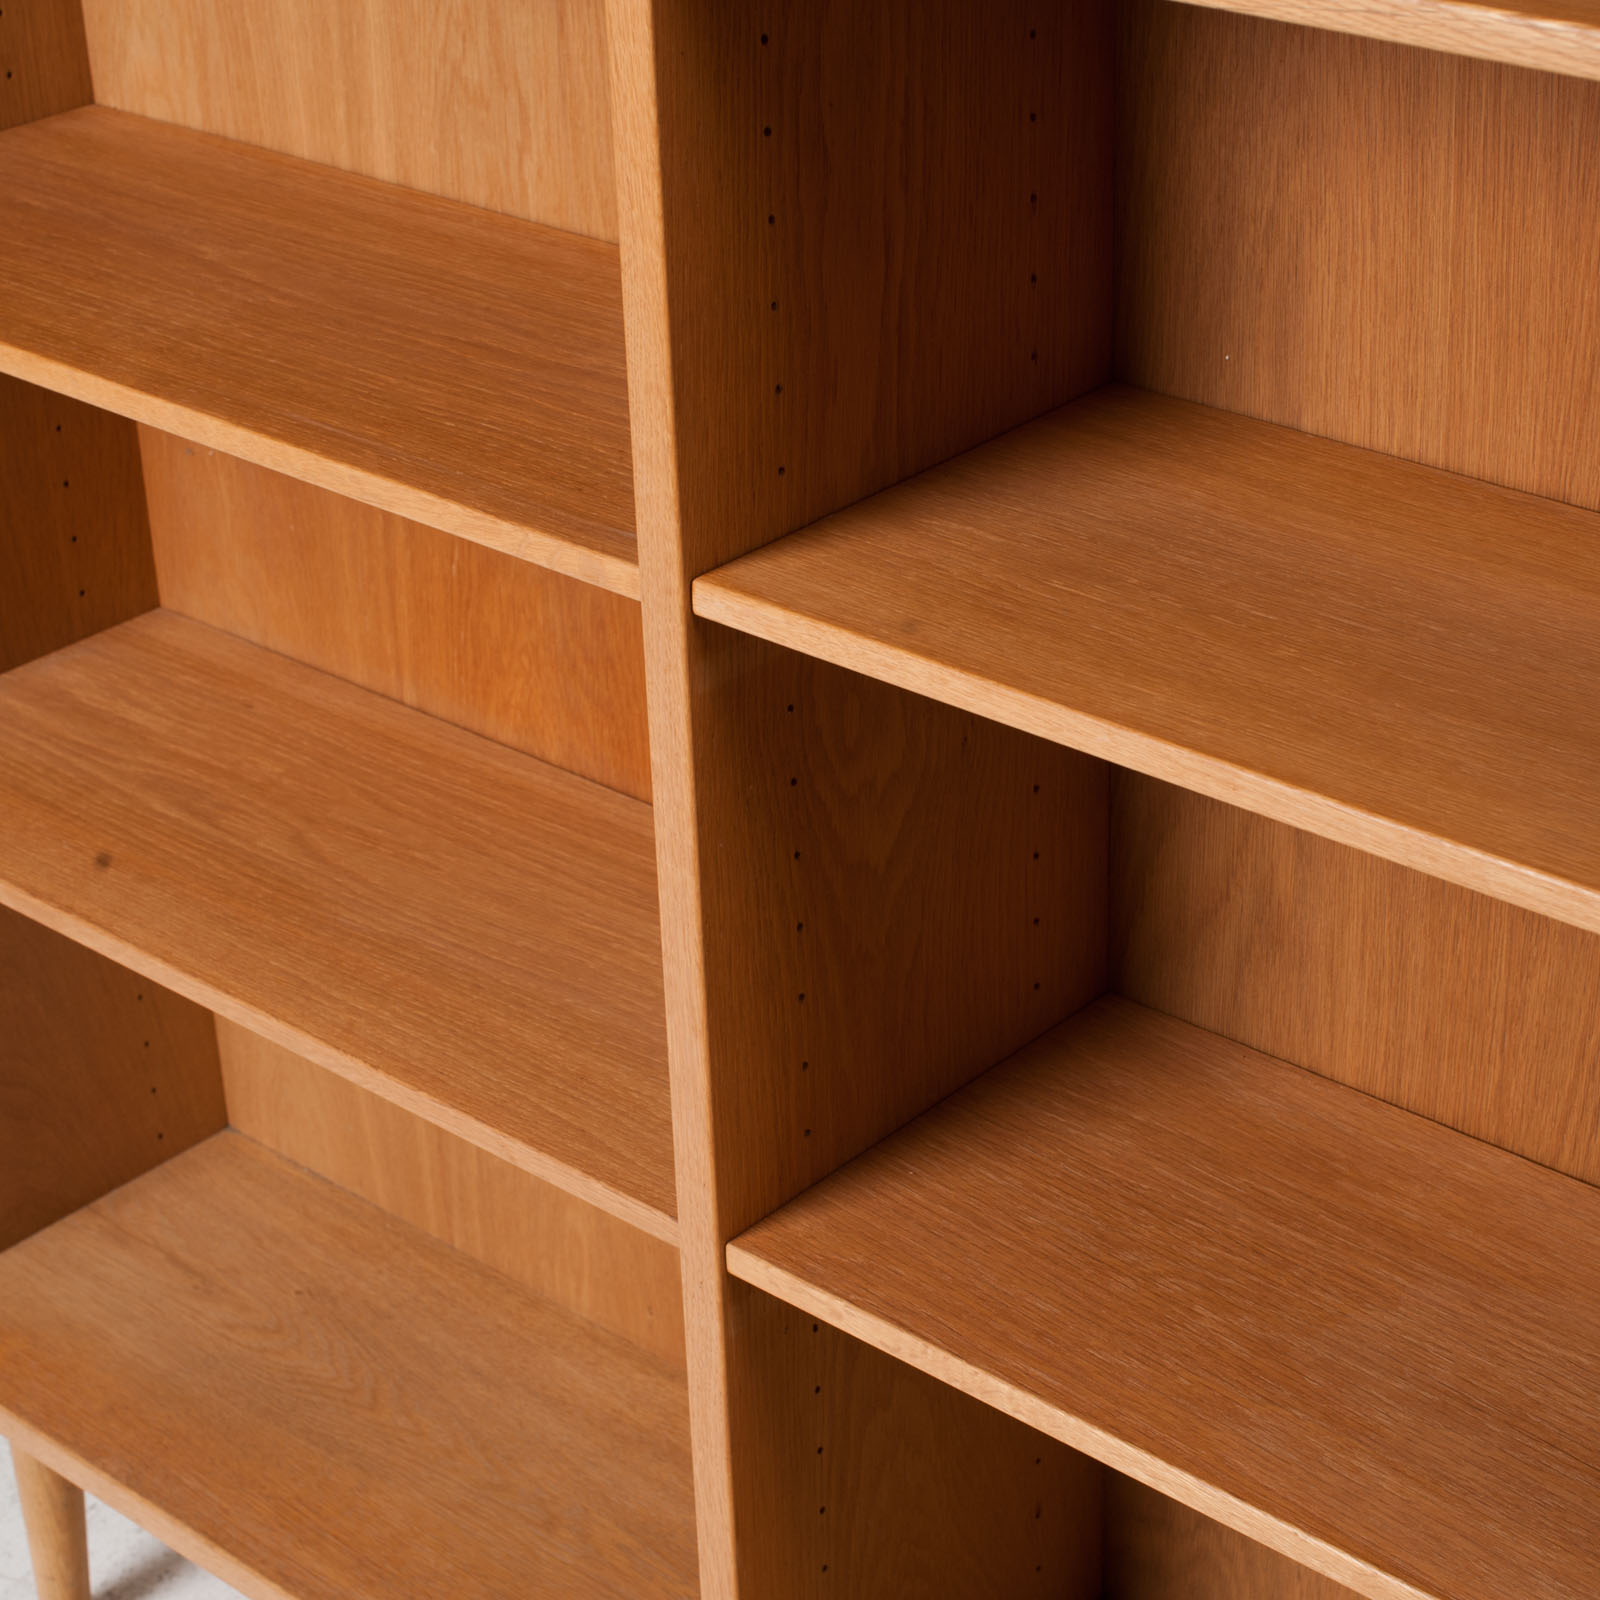 Bookcase By Borge Mogensen In Oak 1960s Denmark 10